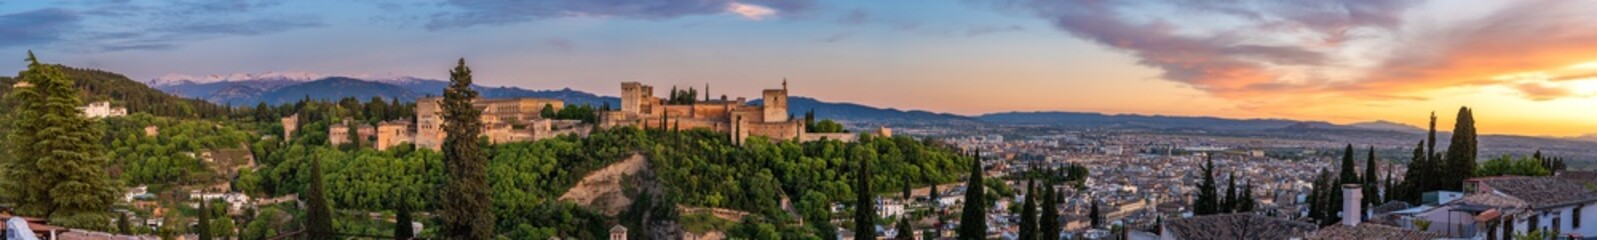 The palace of Charles V in Granada from the viewpoint of San Nicolas. Panoramic view of the Alhambra with Sierra Nevada and Granada in the background, incredible sunset. Fototapete